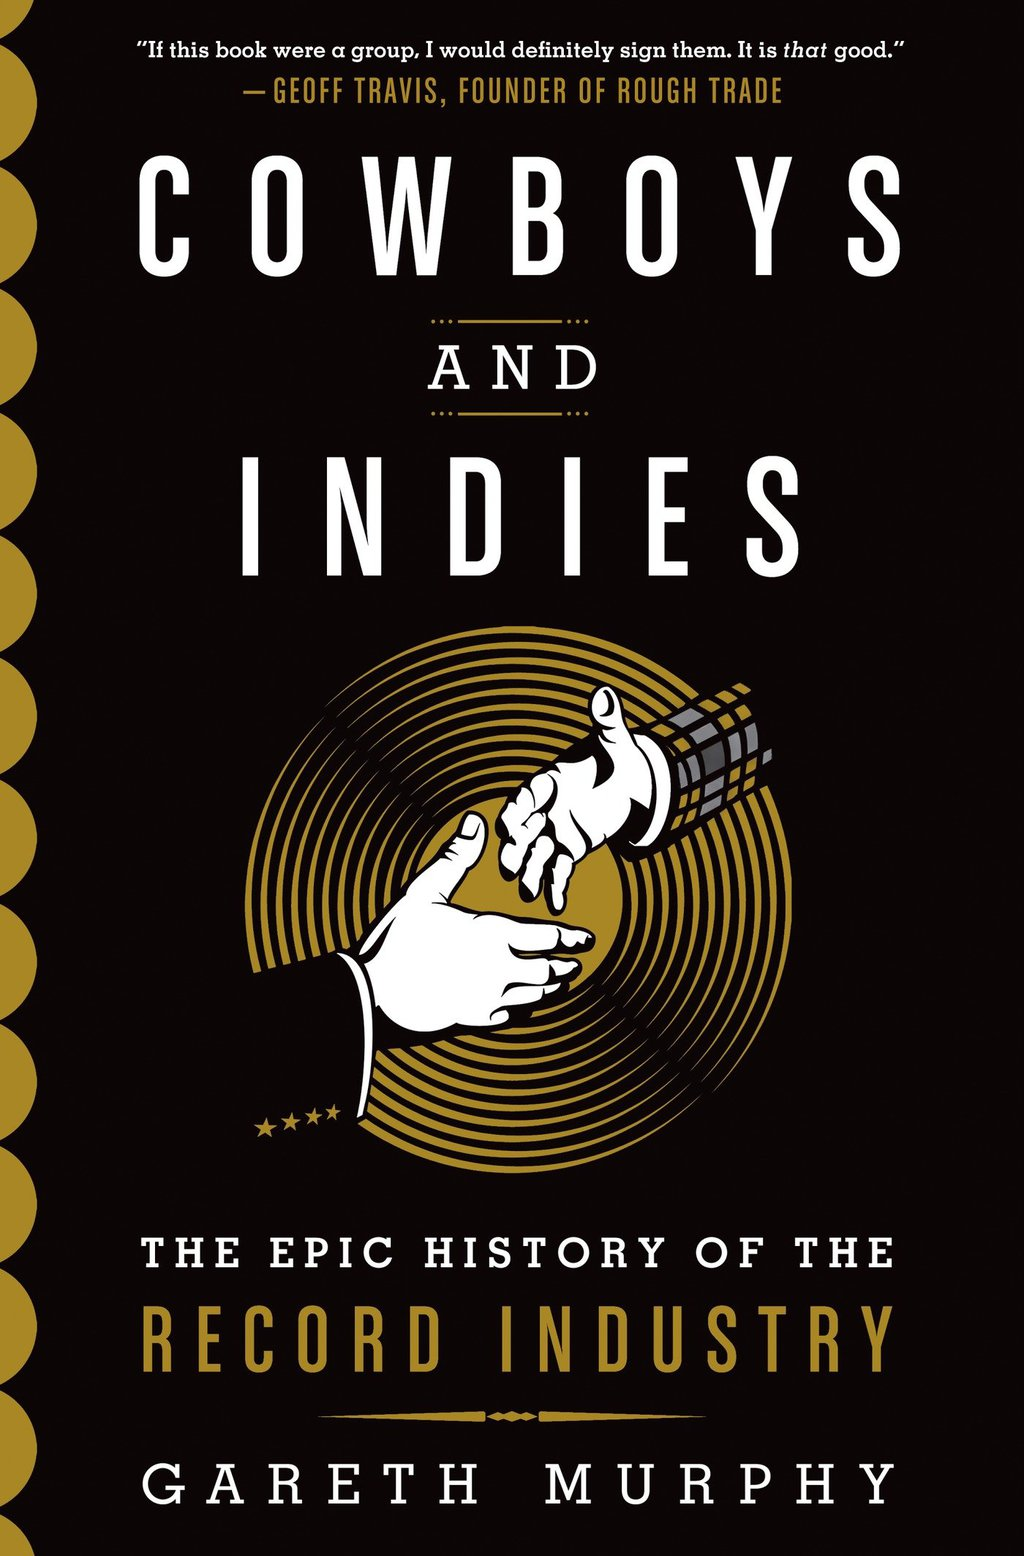 Cowboys and Indies by Gareth Murphy